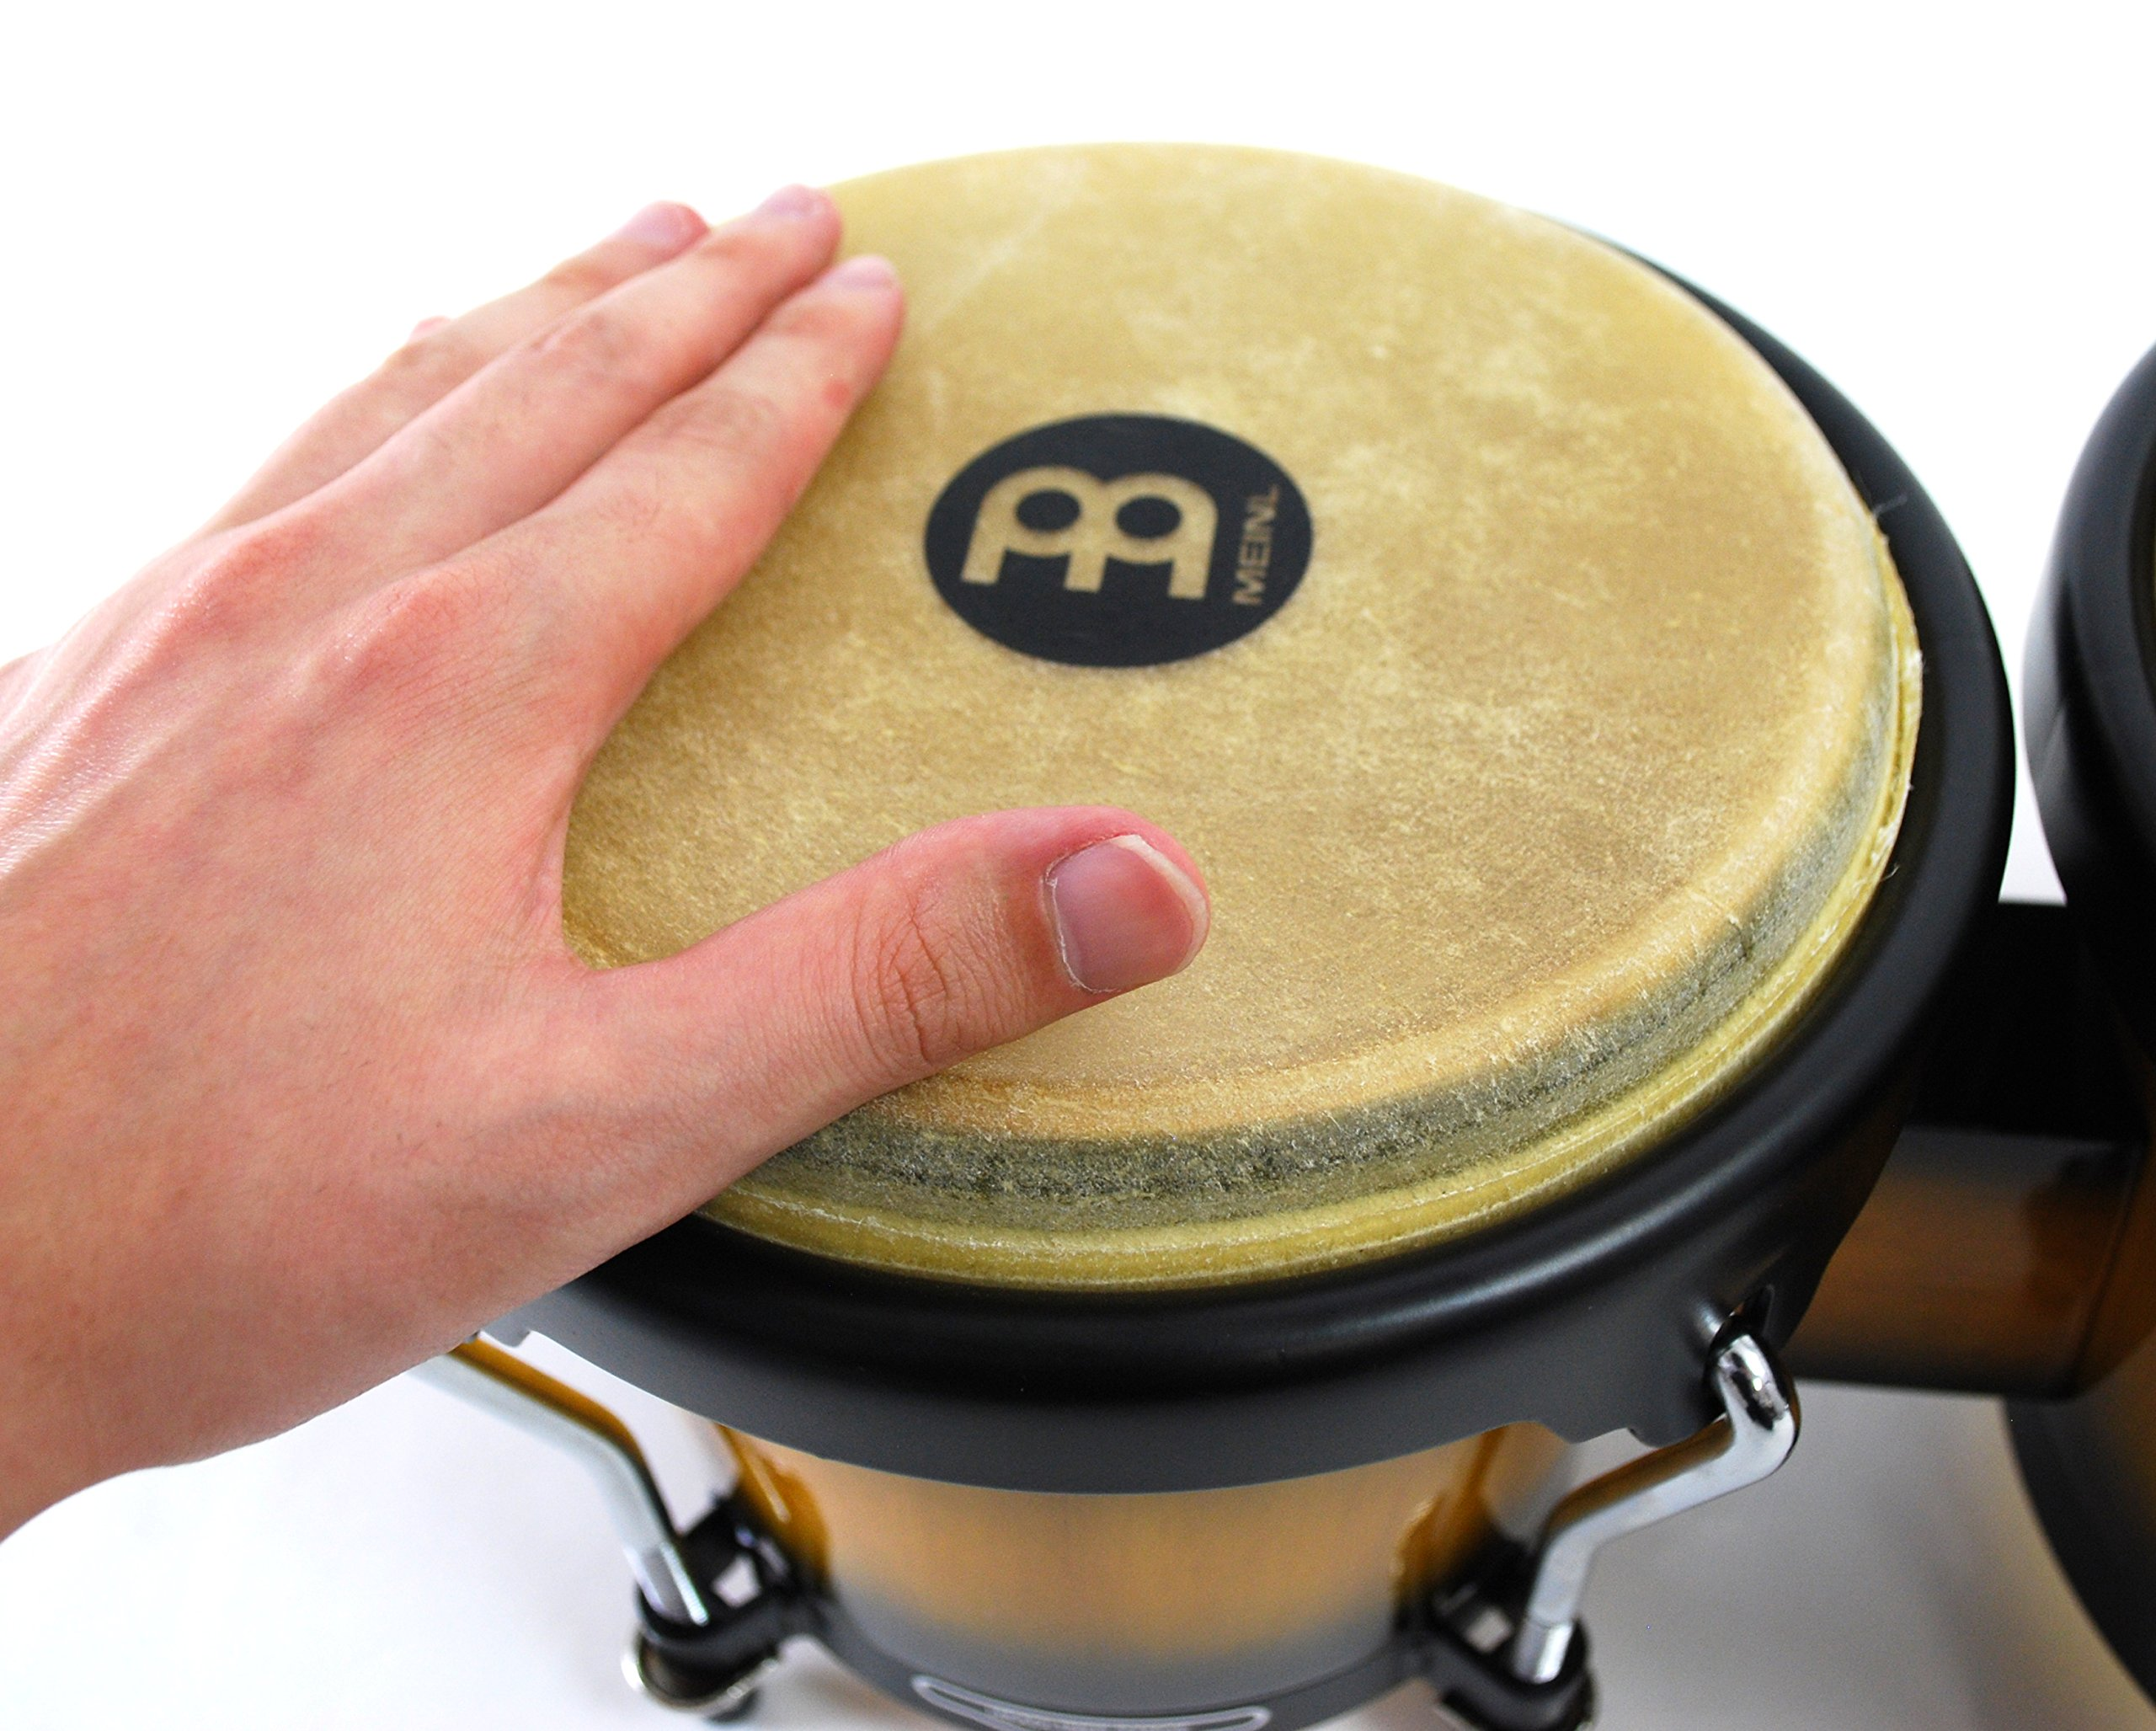 Meinl Percussion Bongos With Hardwood Shells - NOT MADE IN CHINA - Vintage Sun burst Finish, Buffalo Skin Heads, 2-YEAR WARRANTY HB100VSB by Meinl Percussion (Image #2)